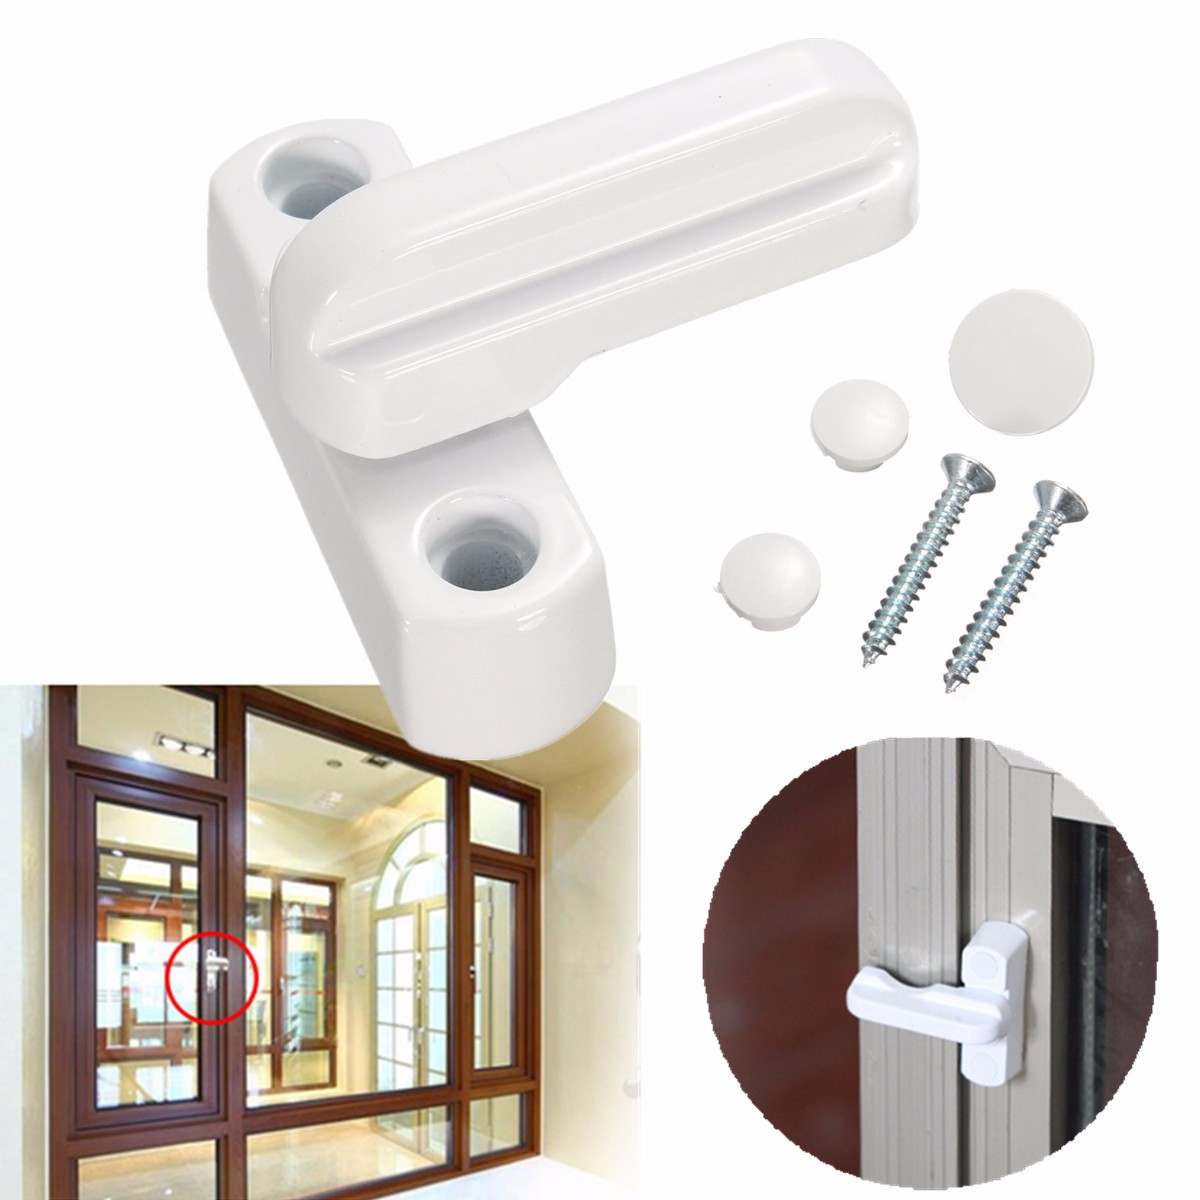 8pcs T Type Window Safety Locks UPVC Door Sash Jammer Security Restrictor Lock